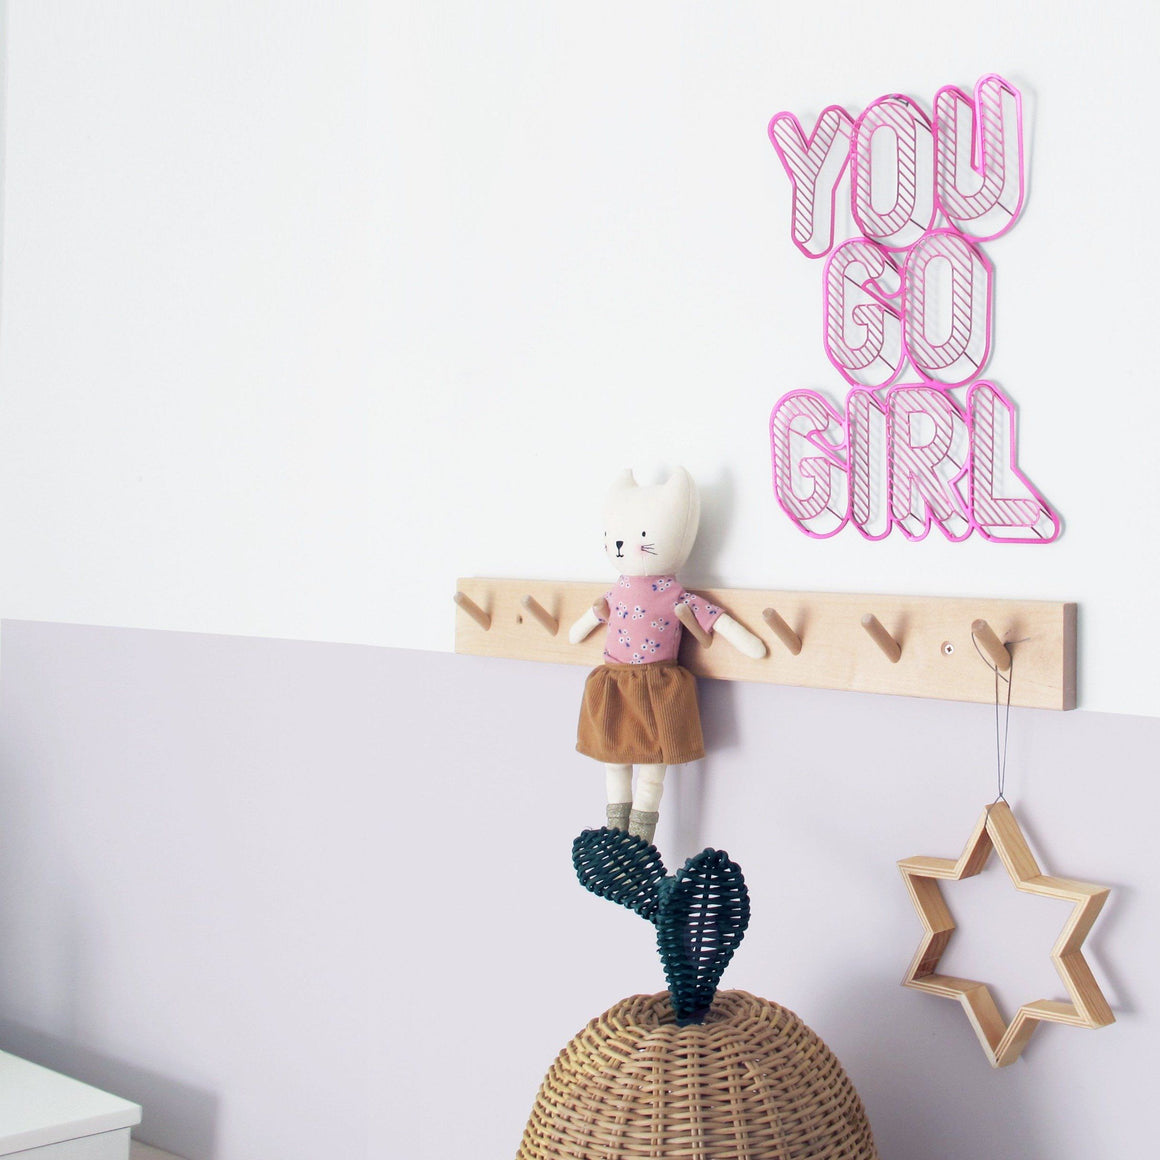 YOU GO GIRL Inspirational Phrase to hang on the wall | Wall Decor ShapeMixer